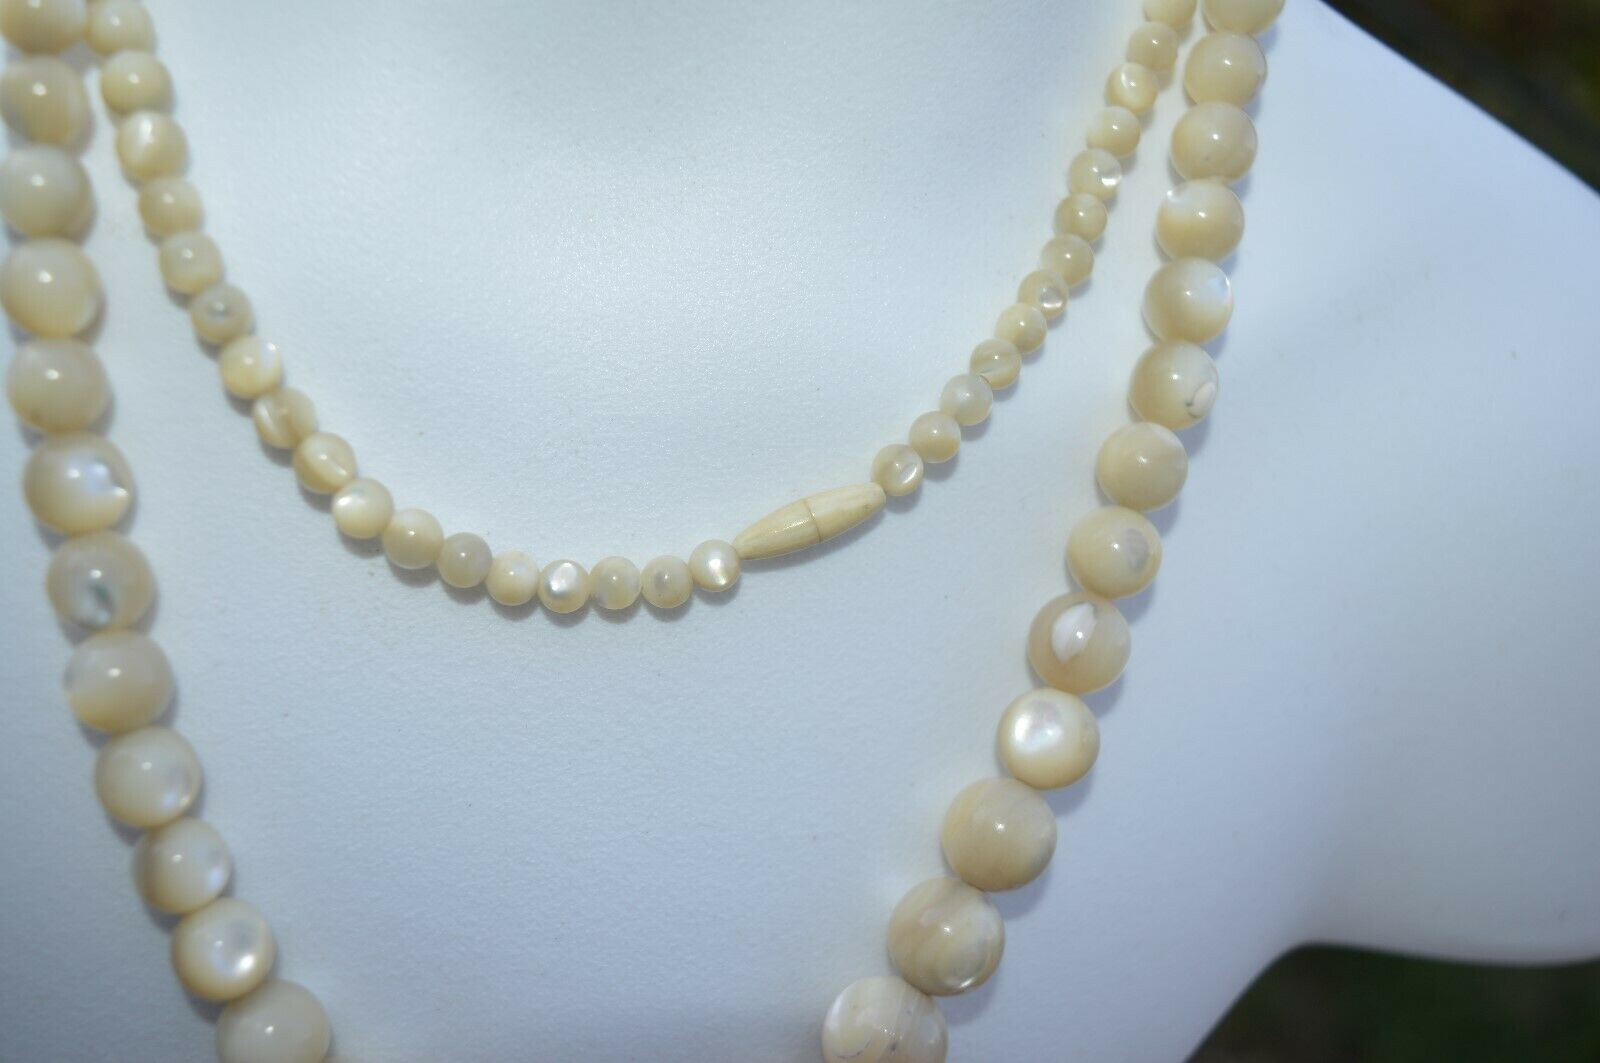 Vintage Swirl Agate Graduated Tan Marble Cream Necklace with hints of Grey NICE